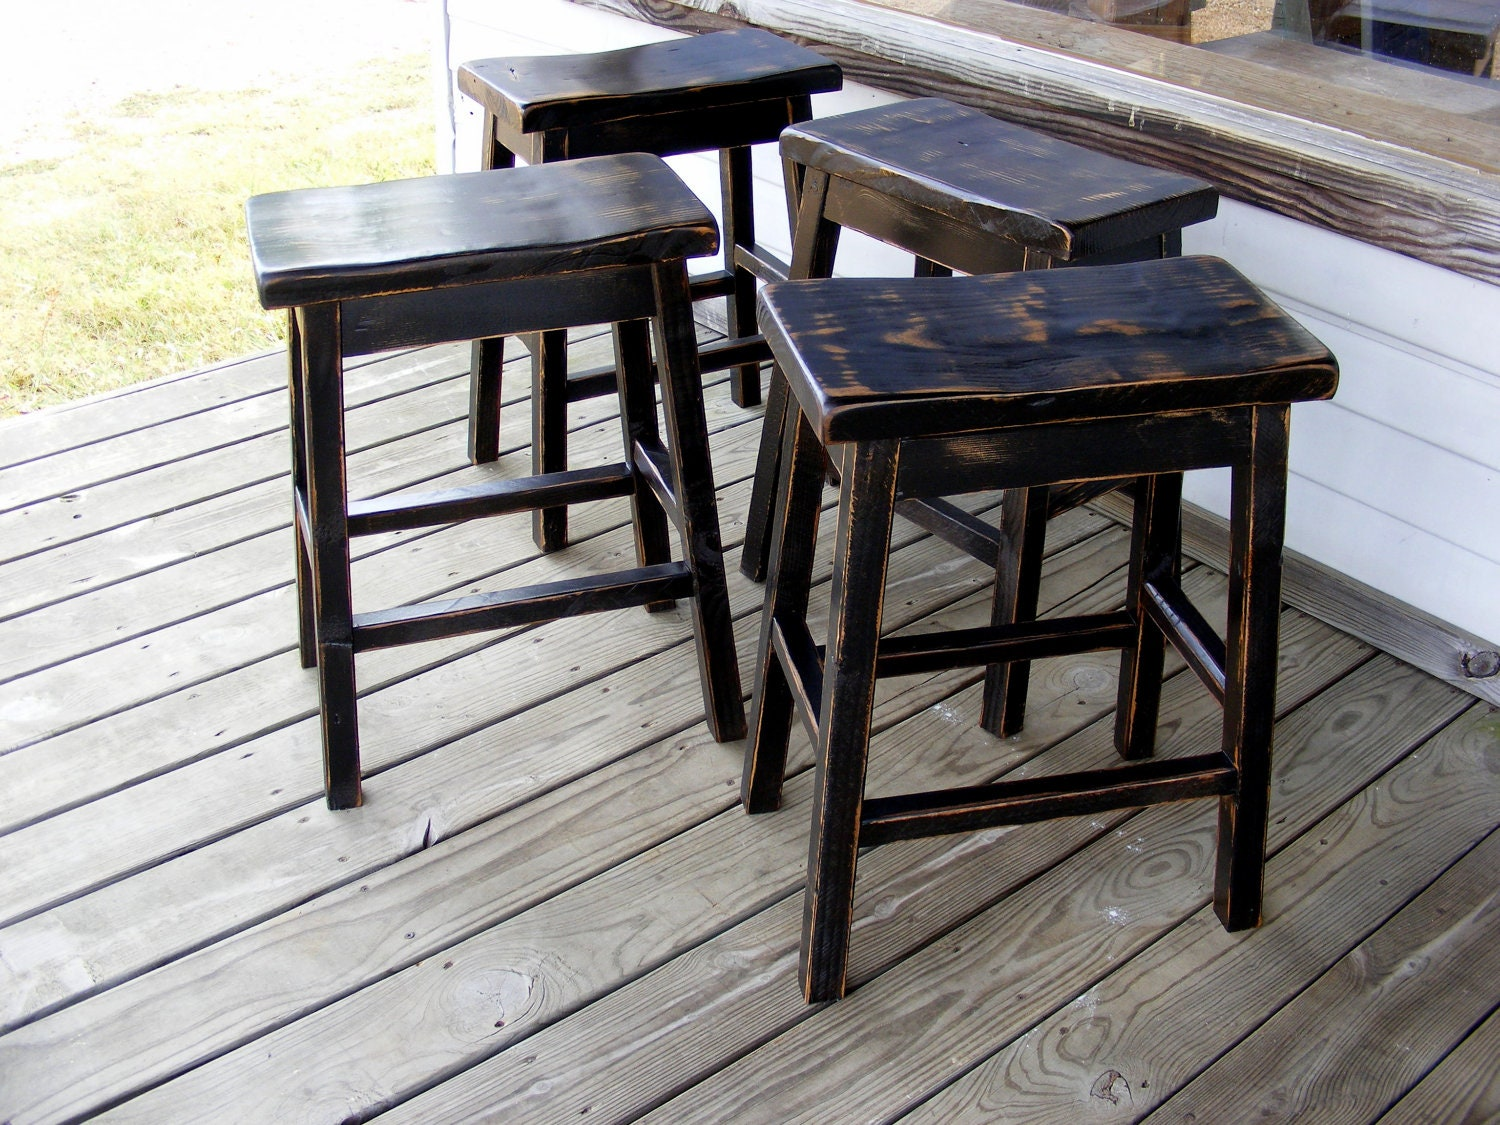 Saddle Stools Distressed BLACK Set of 4 by TheWoodworkMan  : ilfullxfull384021370f15w from www.etsy.com size 1500 x 1125 jpeg 451kB